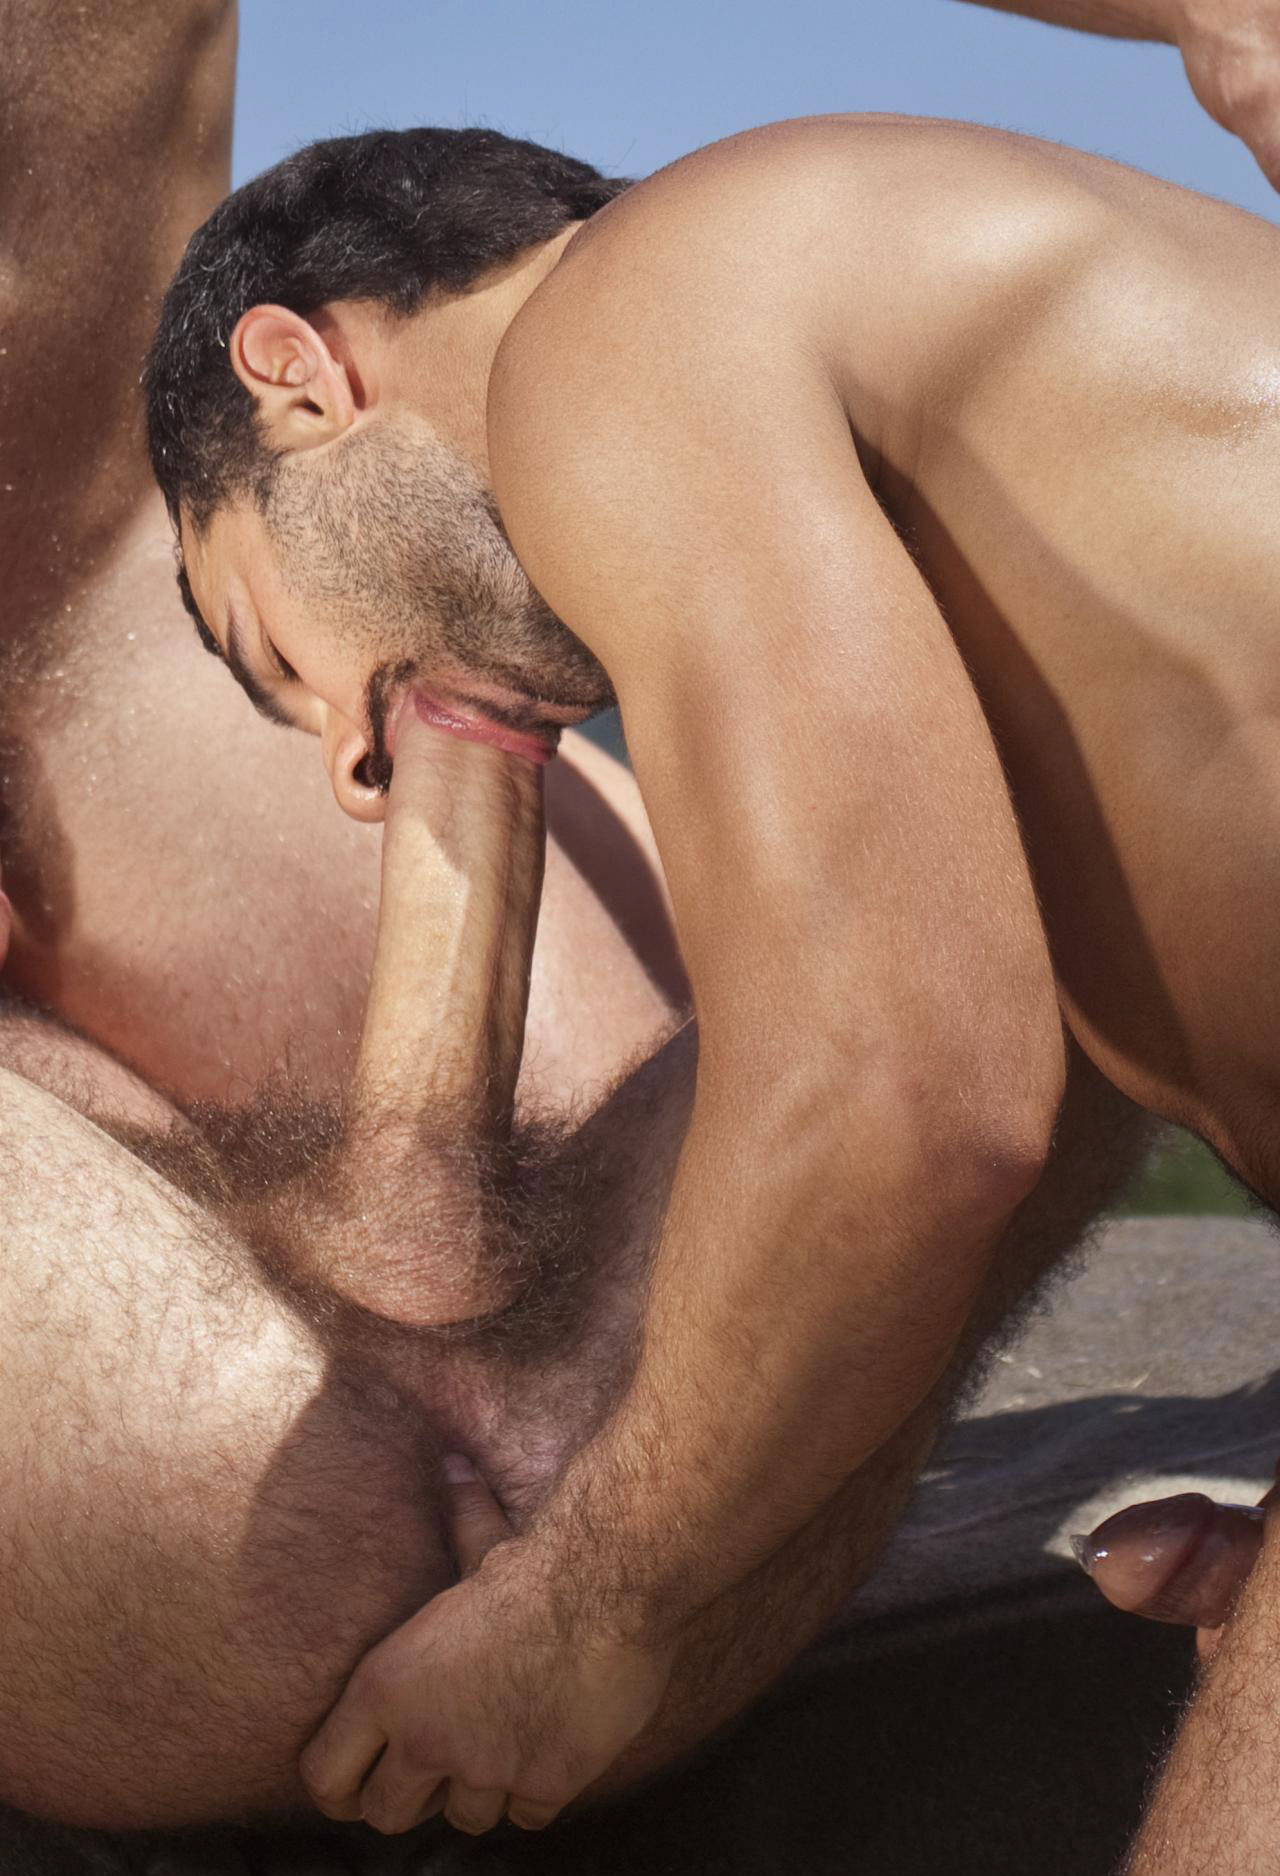 videos guarros gratis porno gay x